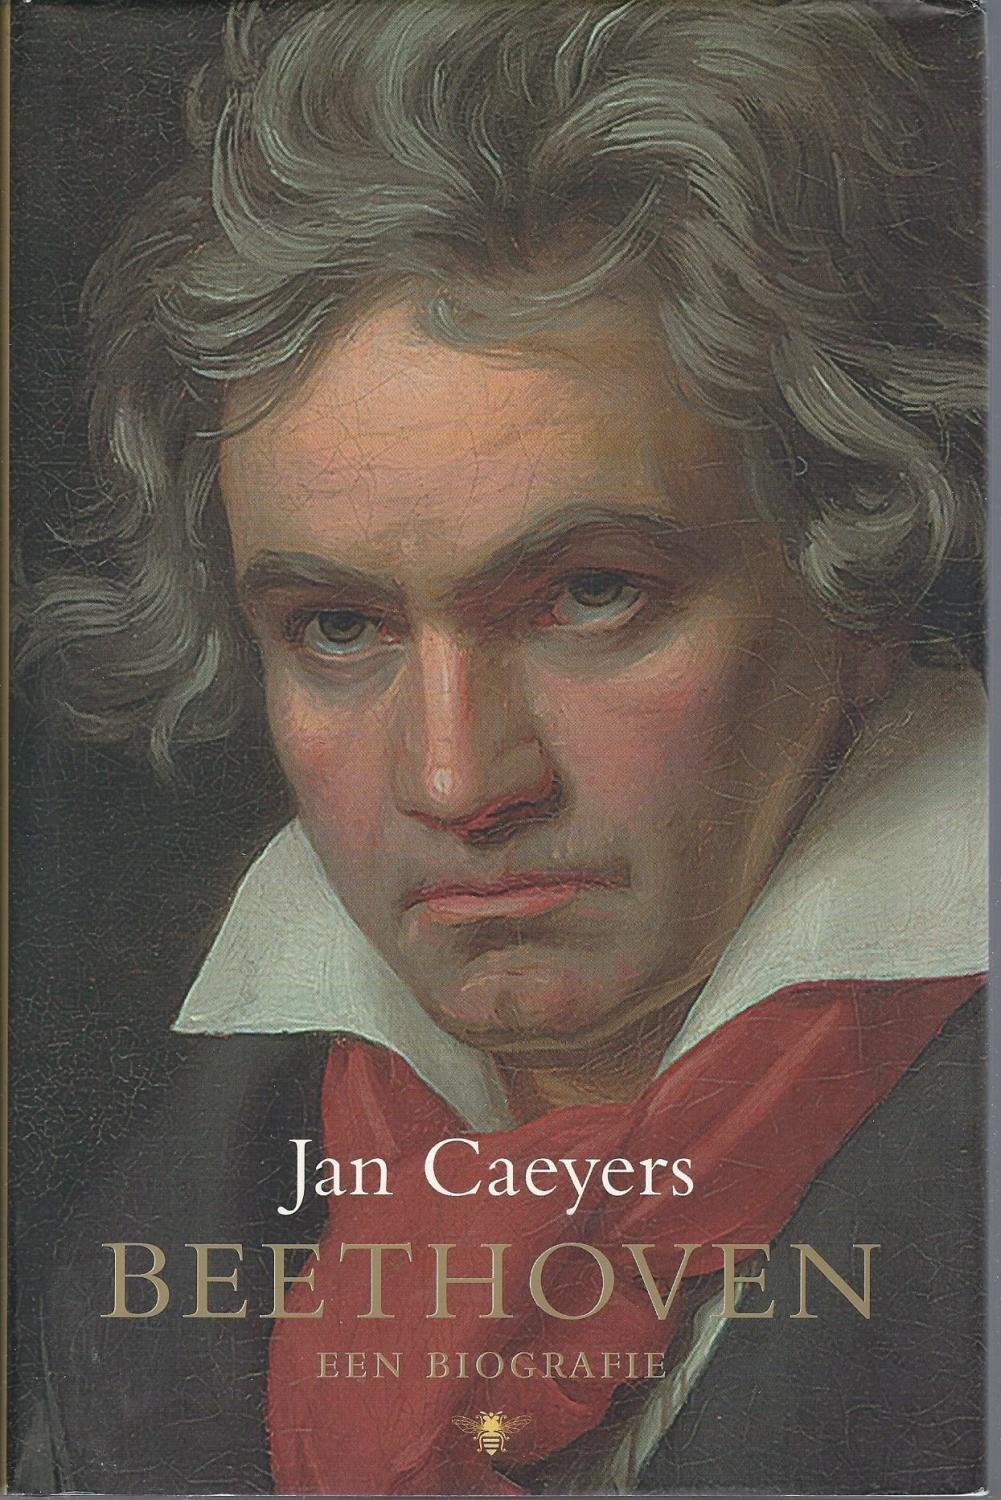 Beethoven: Een Biografie - Caeyers, Jan